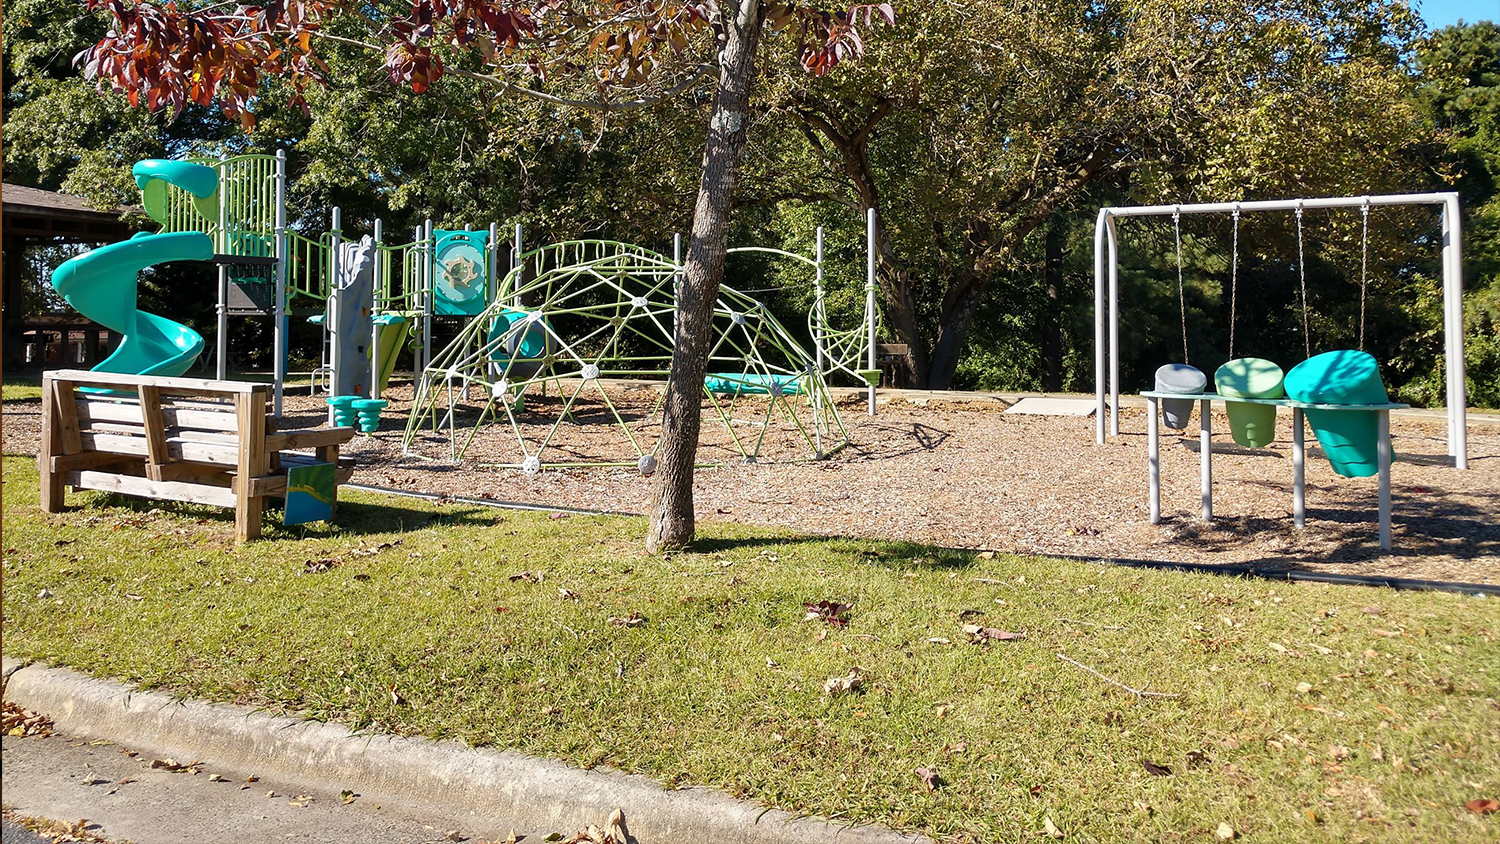 Playground Durham Park - Outdoor Recreation - Parks Recreation and Tourism Management NC State